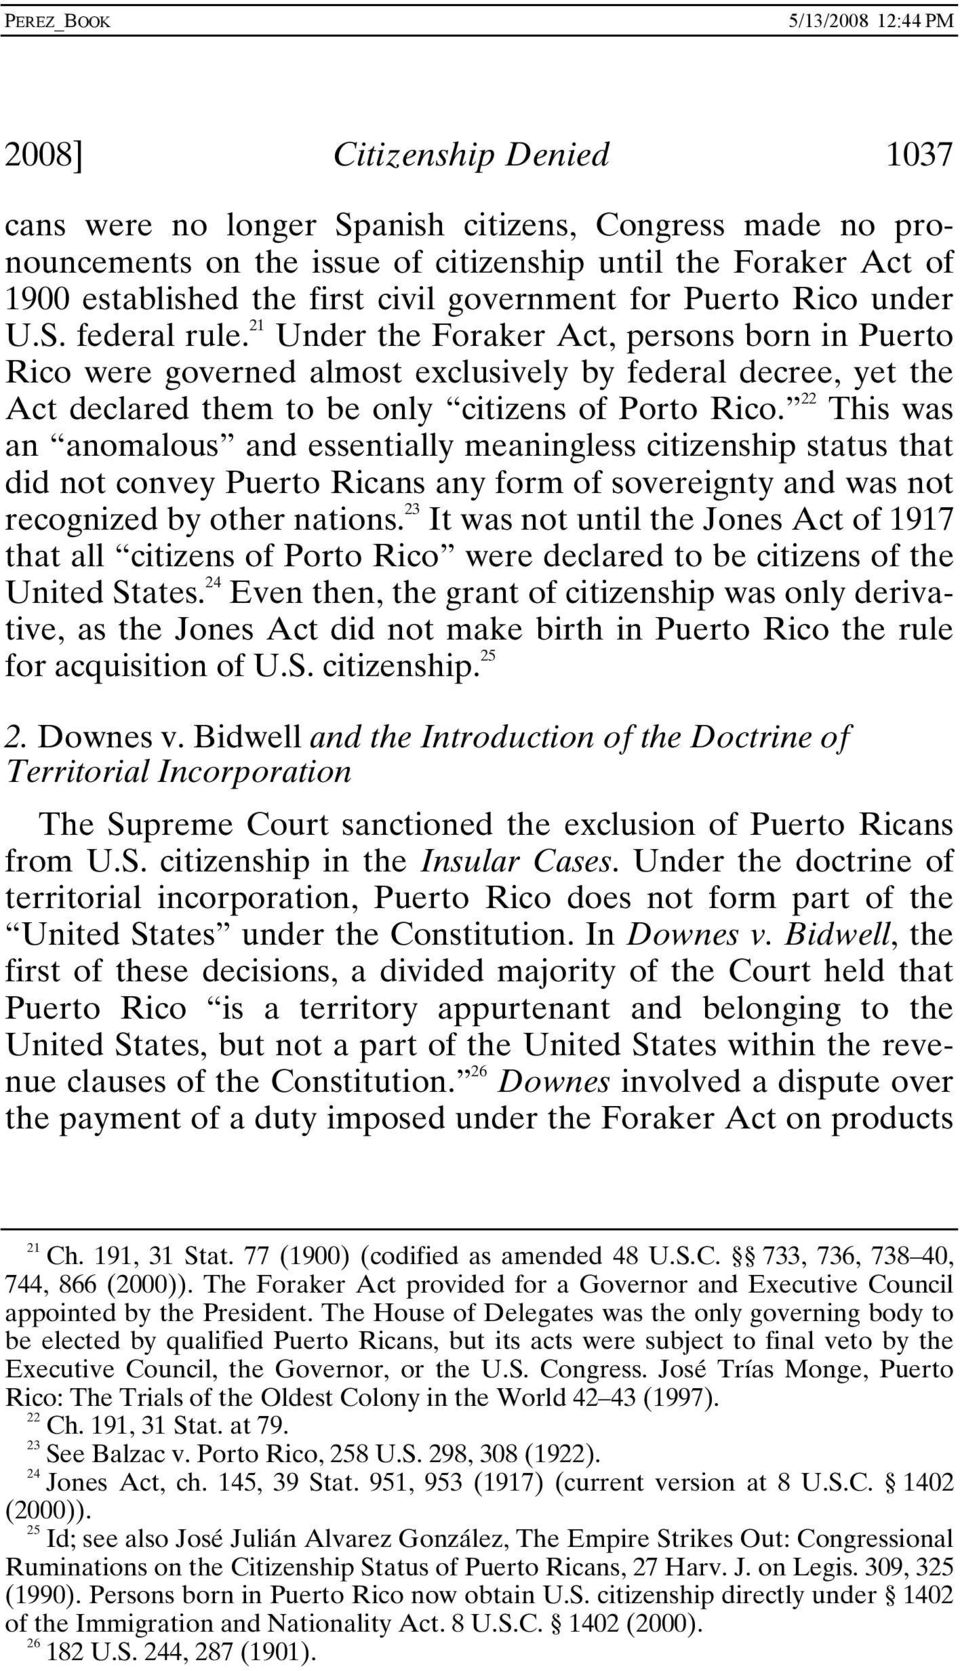 21 Under the Foraker Act, persons born in Puerto Rico were governed almost exclusively by federal decree, yet the Act declared them to be only citizens of Porto Rico.